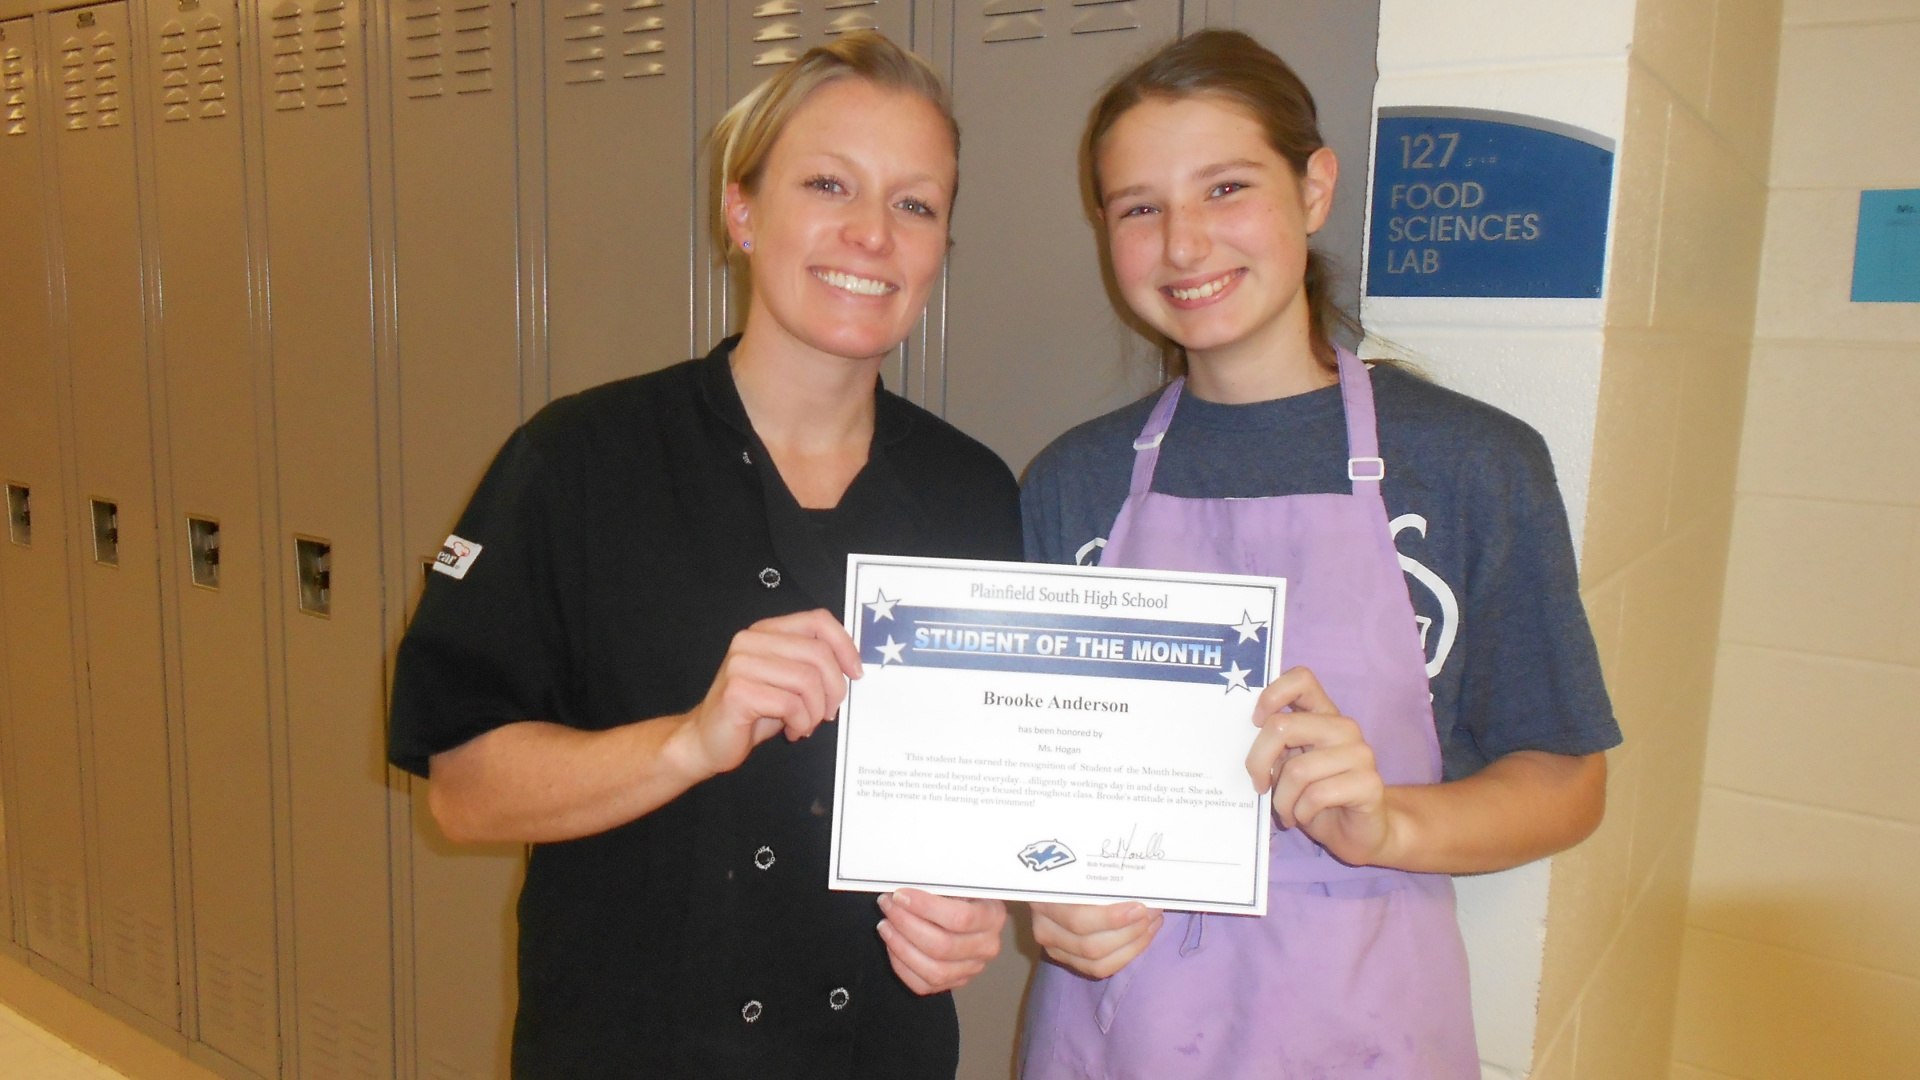 Student of the Month Brooke Anderson